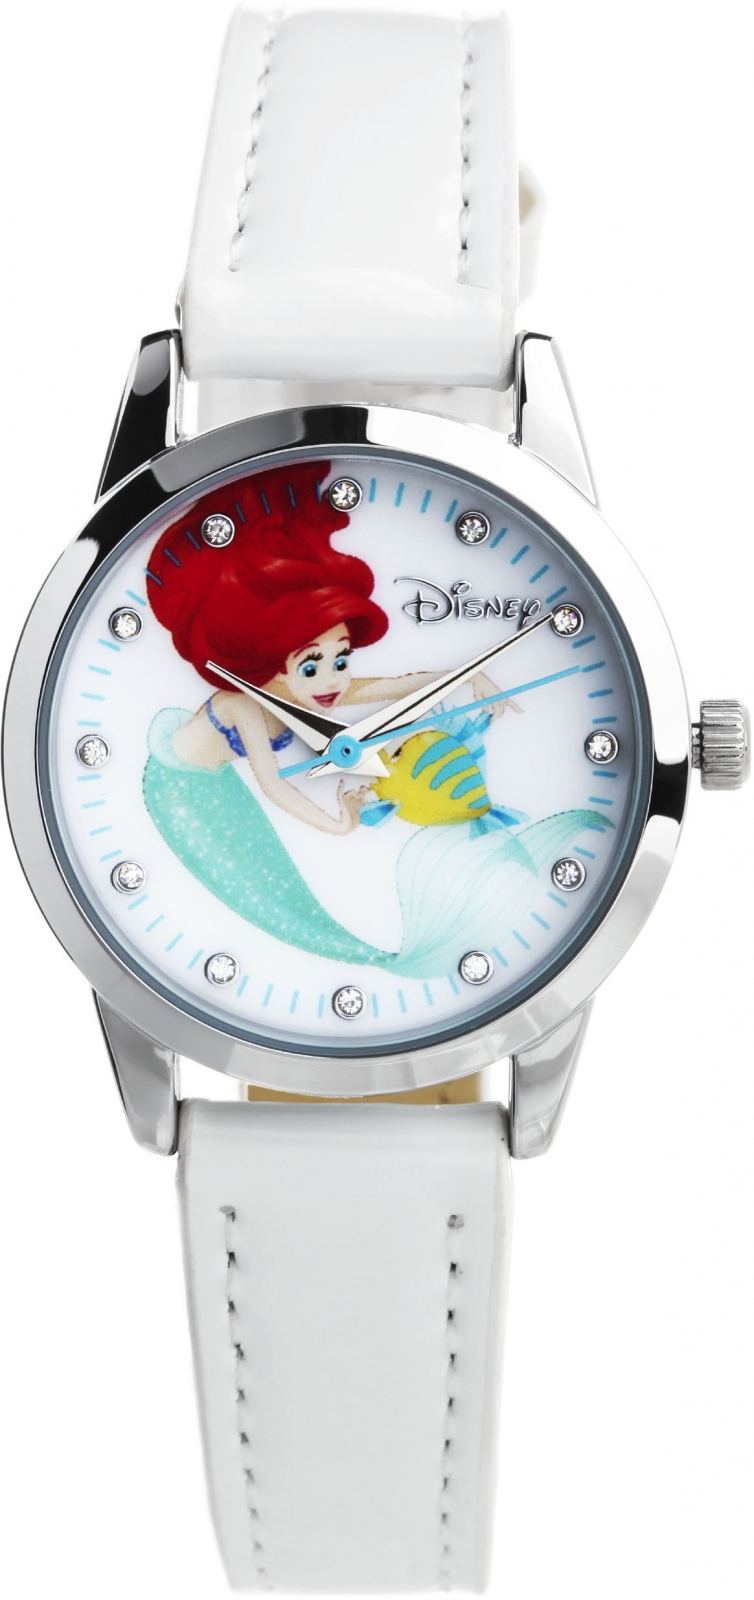 Disney by RFS D3801P urban decay mono тени для век verve